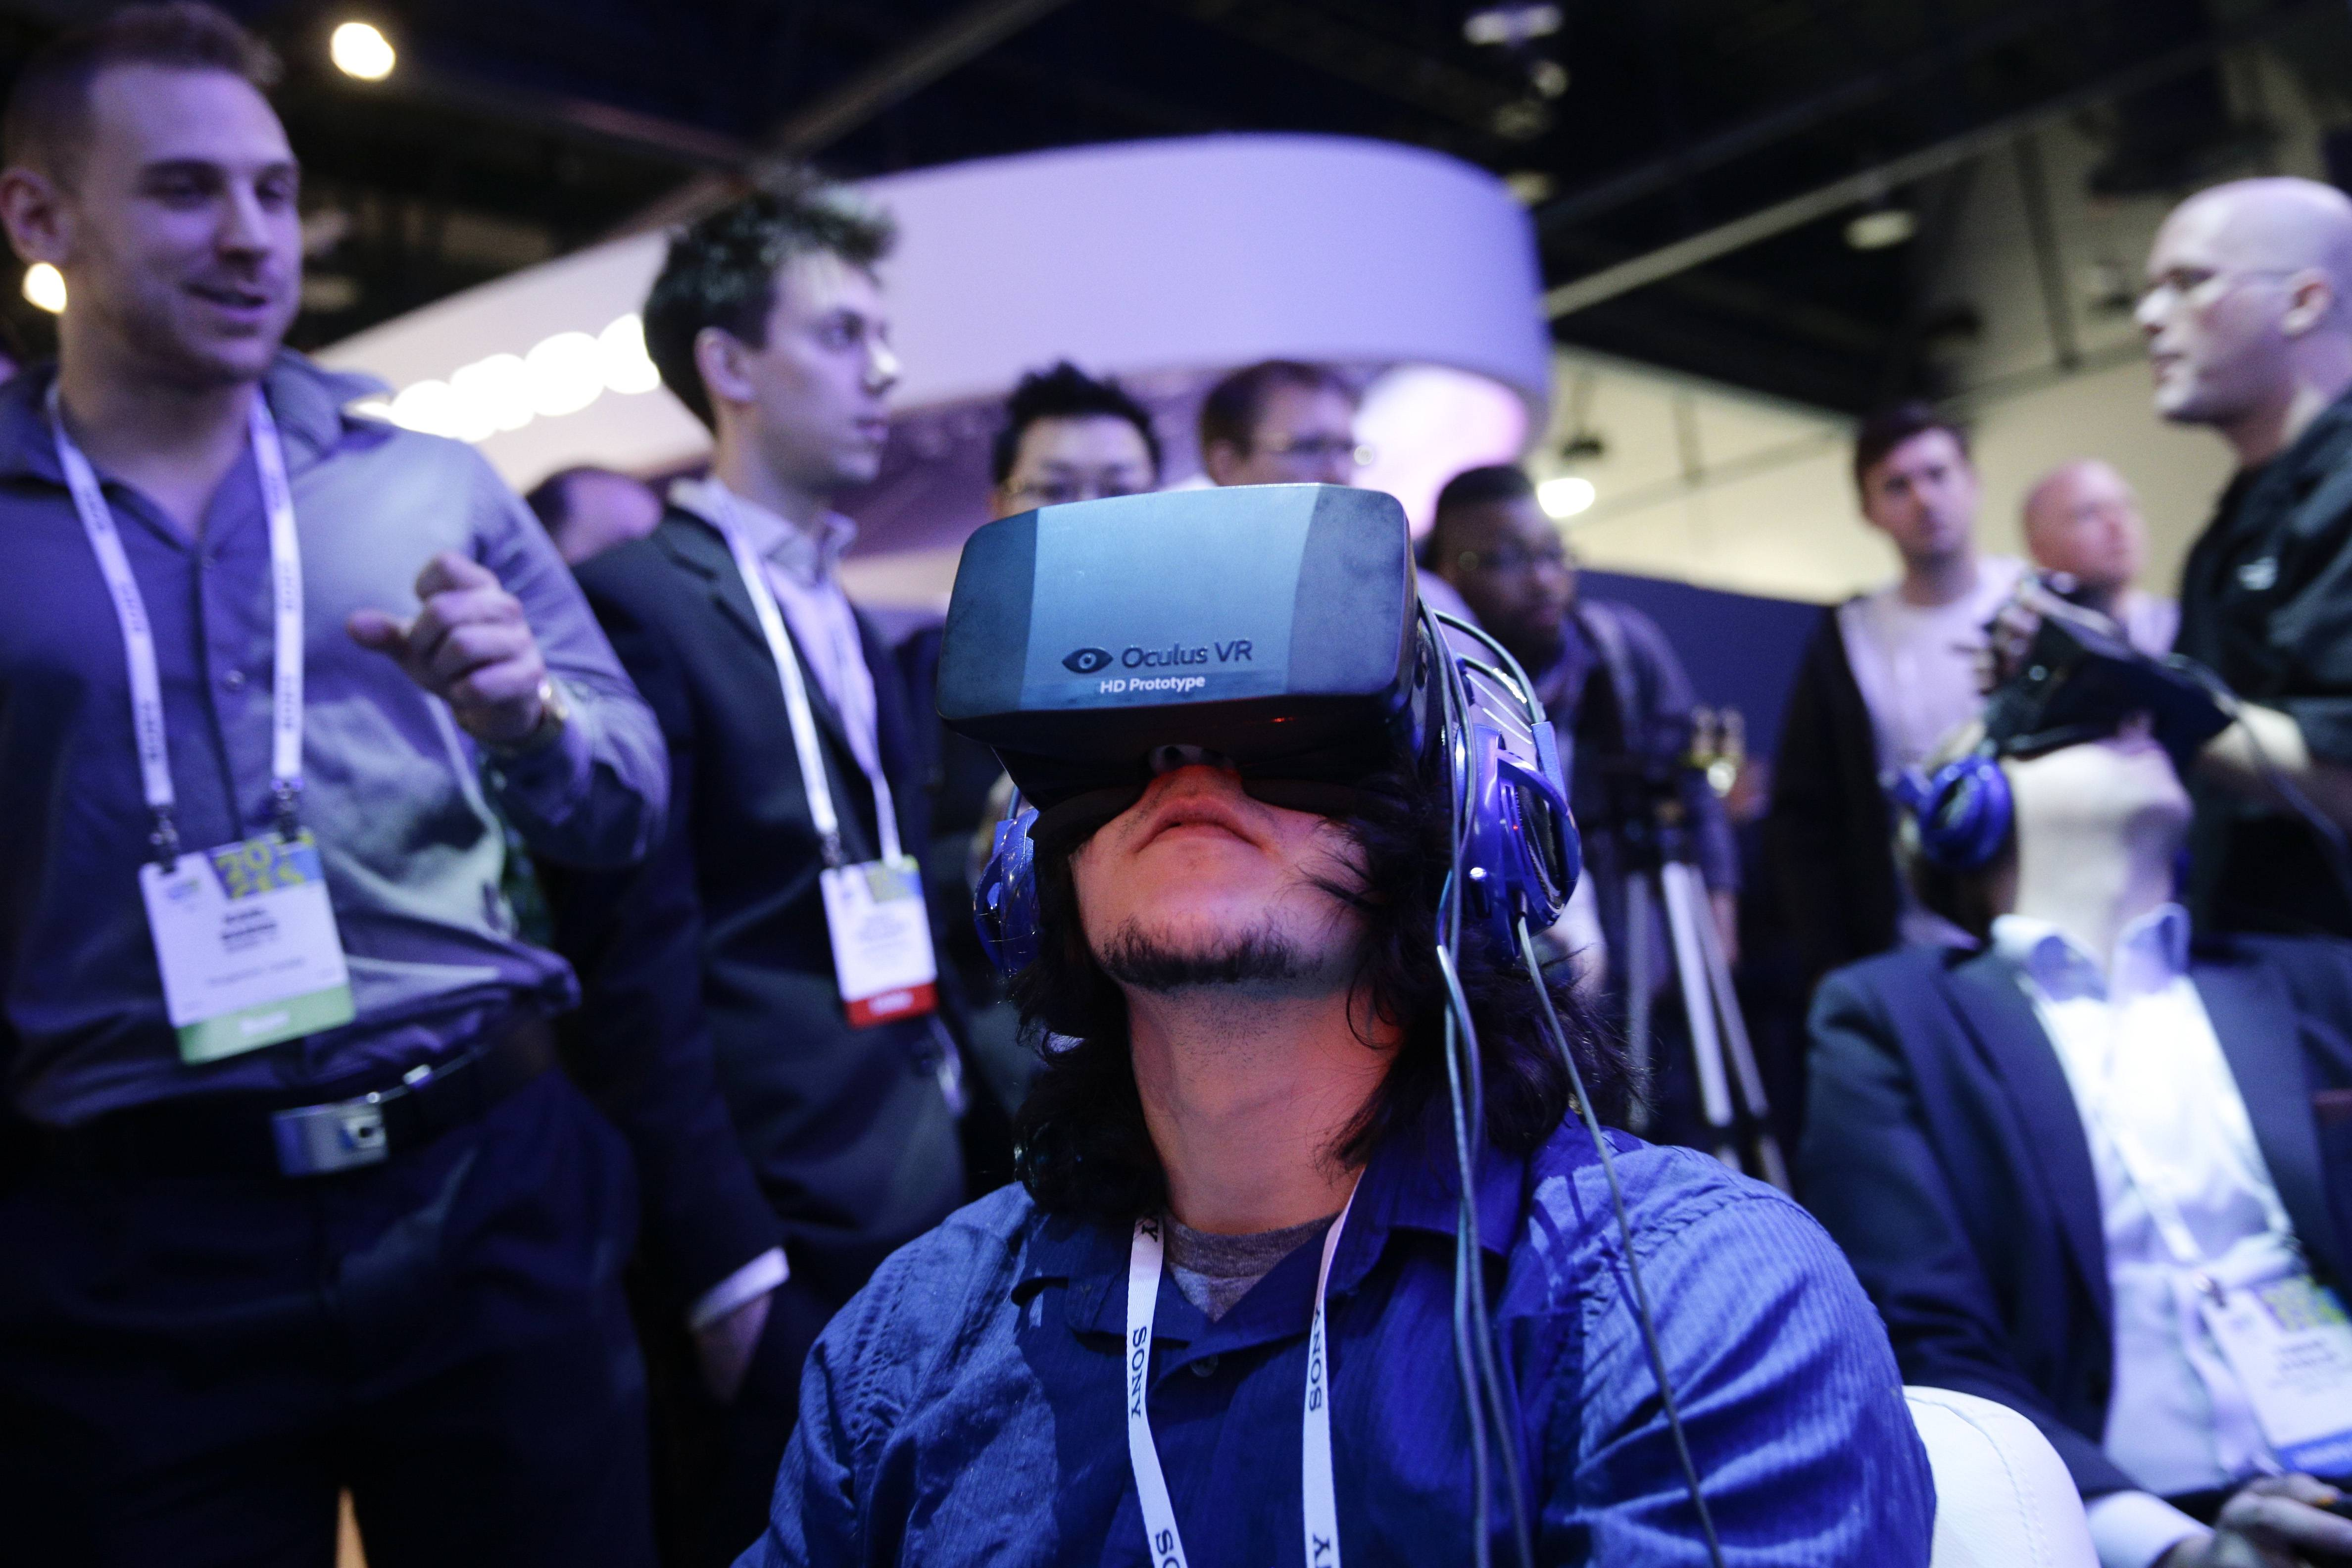 People play a video game wearing Oculus Rift virtual reality headsets. Facebook has agreed to buy the company for $2 billion, betting that its virtual reality may be a new way for people to communicate, learn or be entertained.